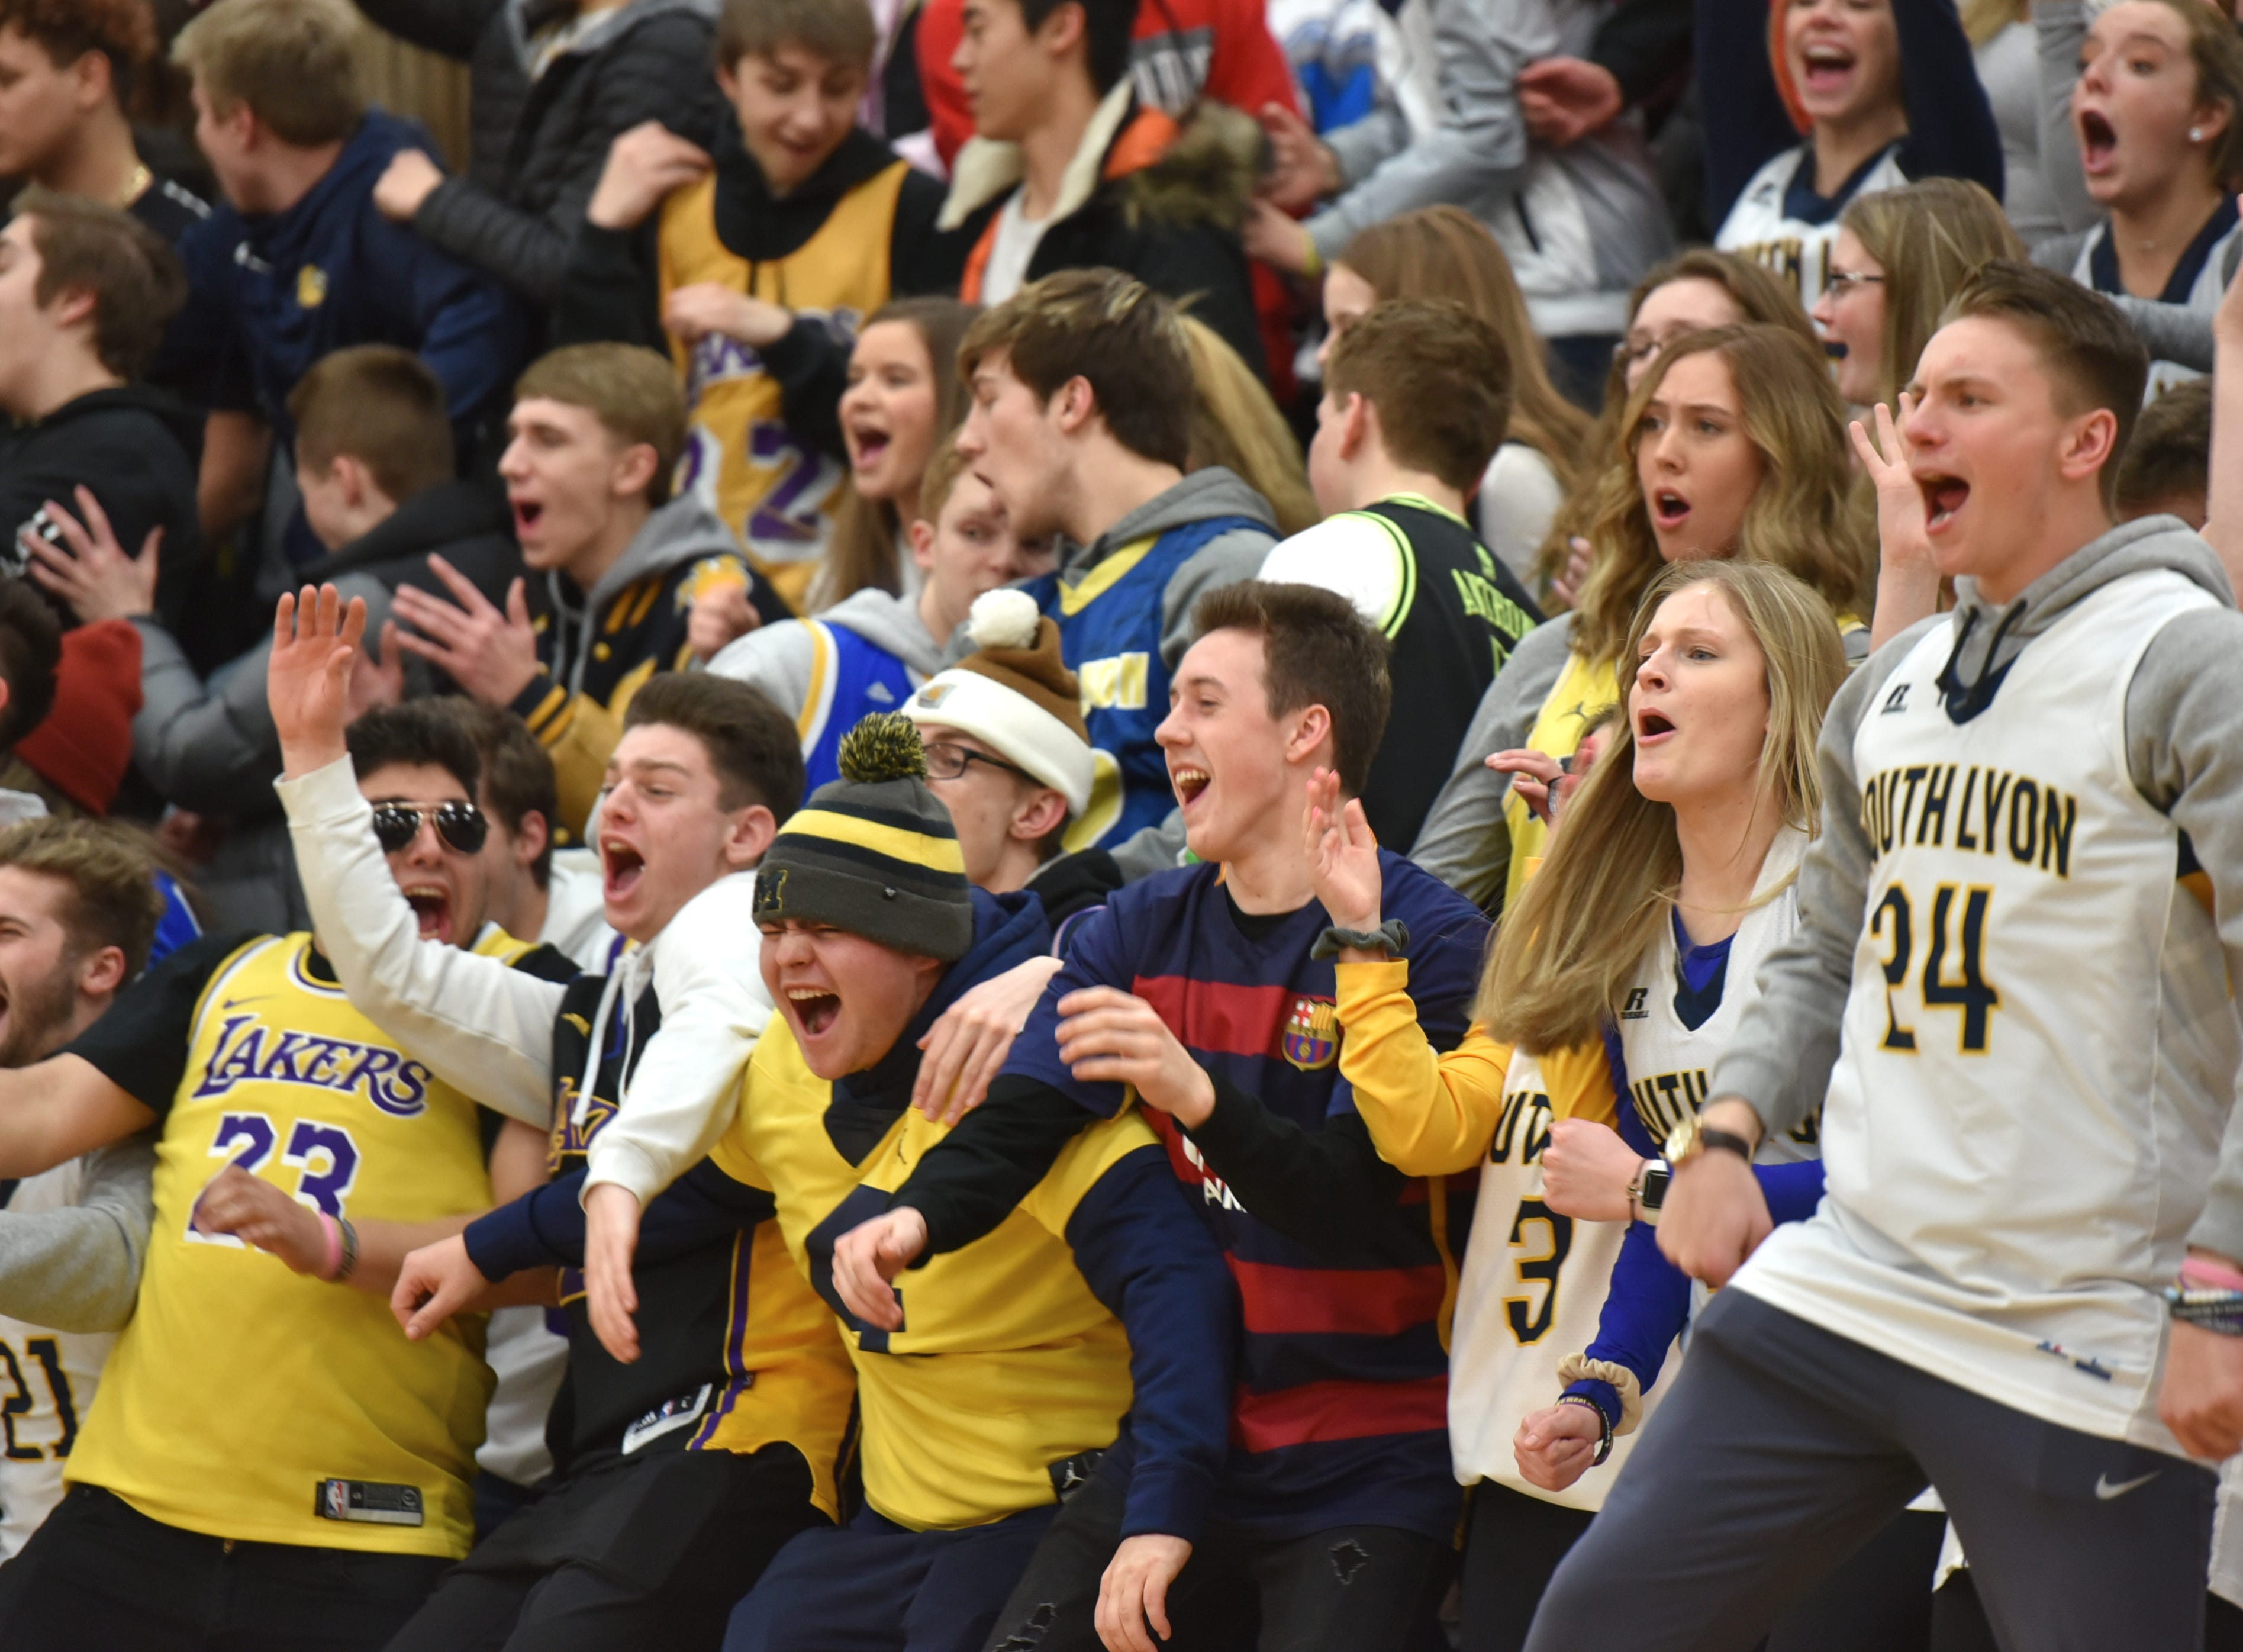 South Lyon High's student section reacts to a good play by their Lion team on Feb. 8.